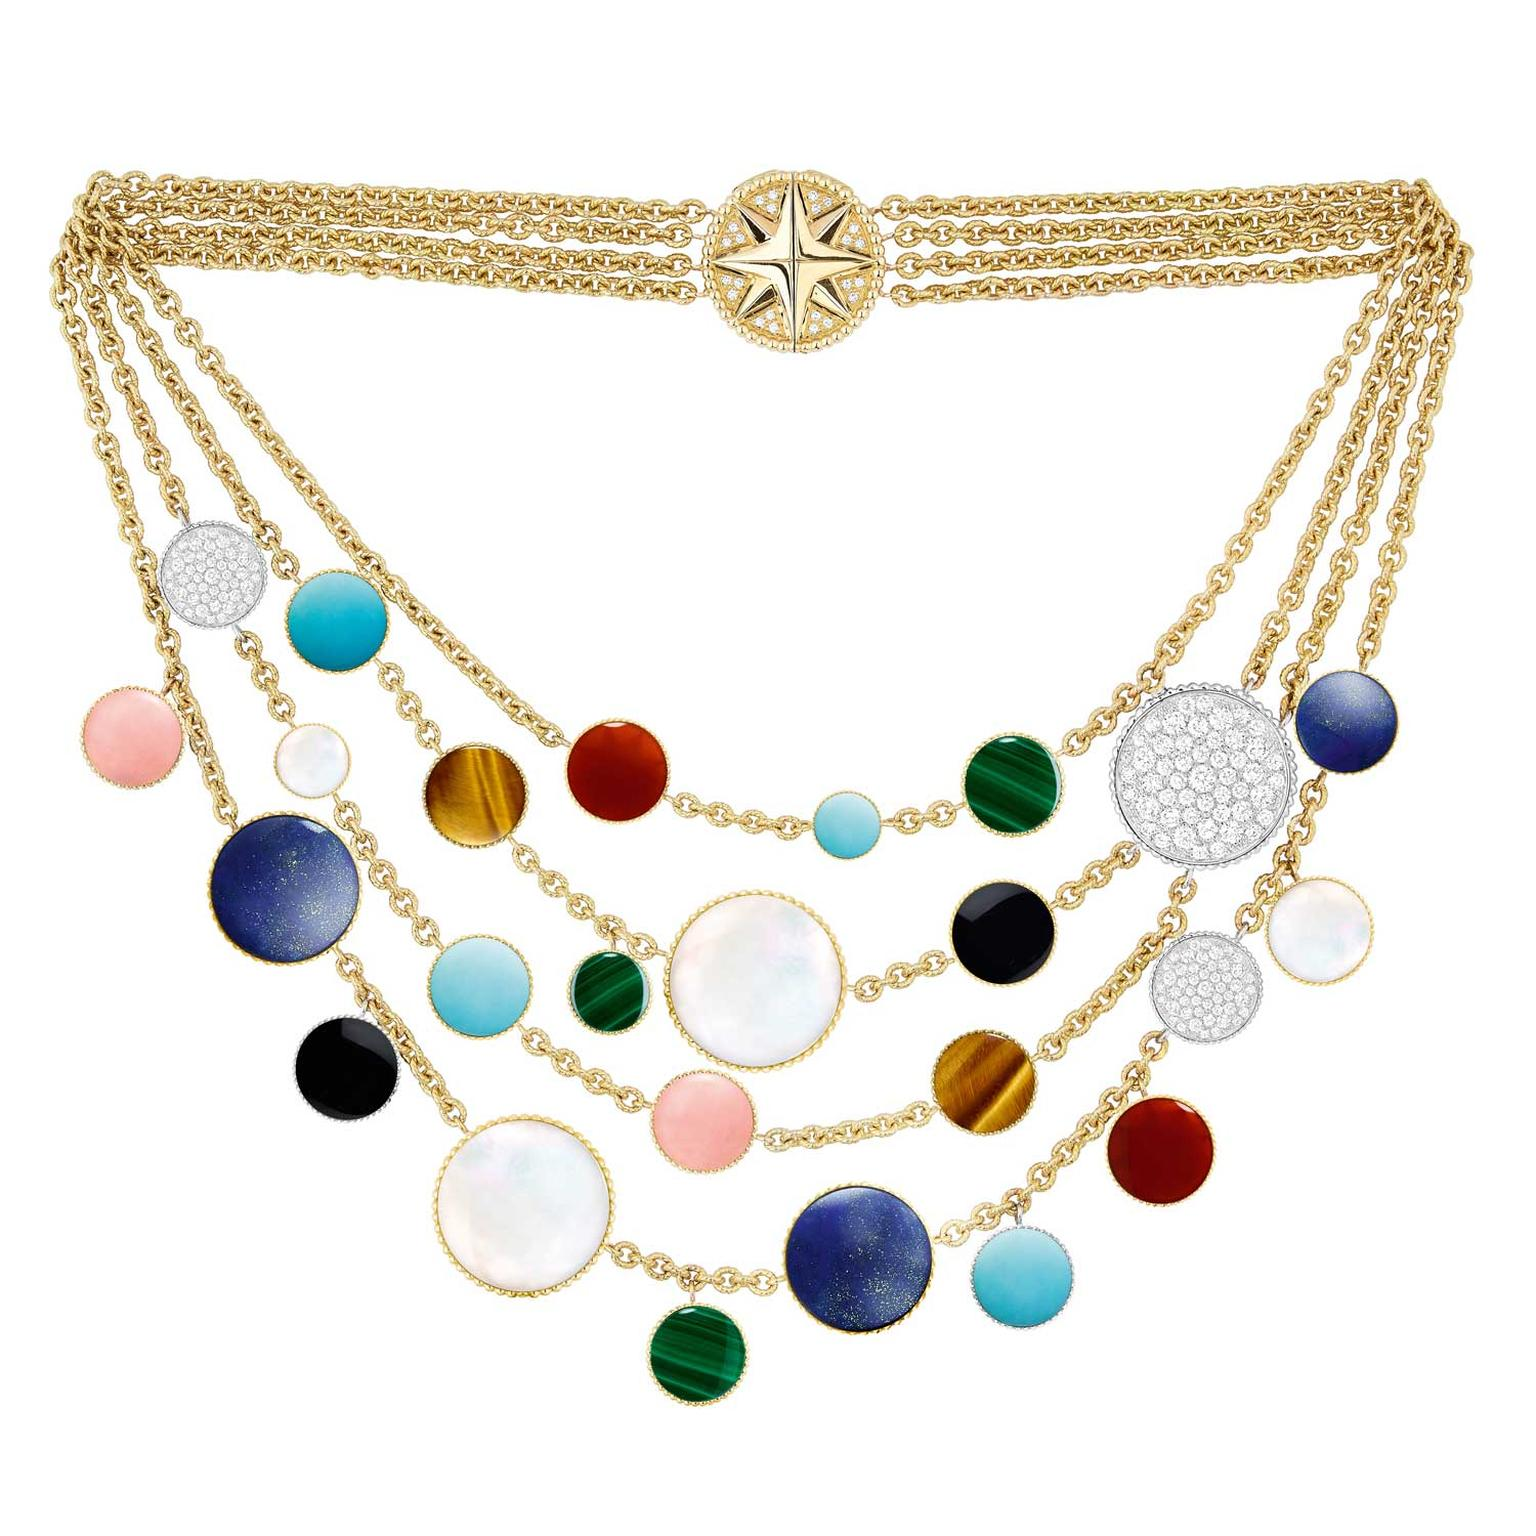 Dior Rose des Vents multi-strand necklace reverse